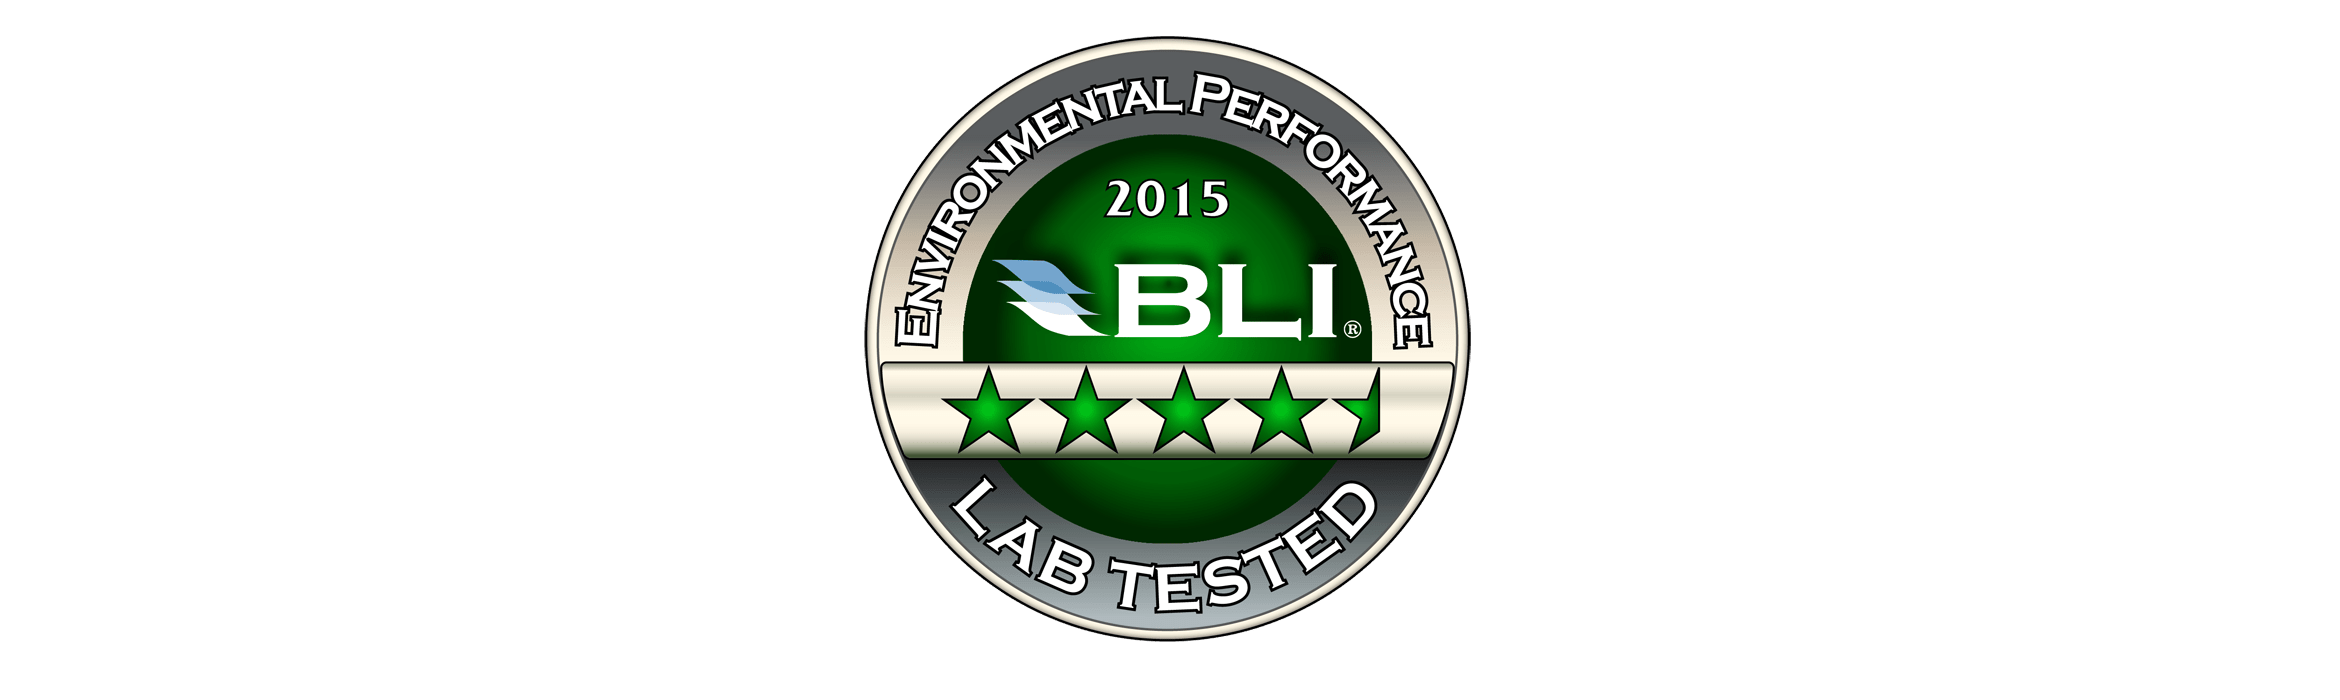 Bli Environmental Performance 2015 Award Lab Tested